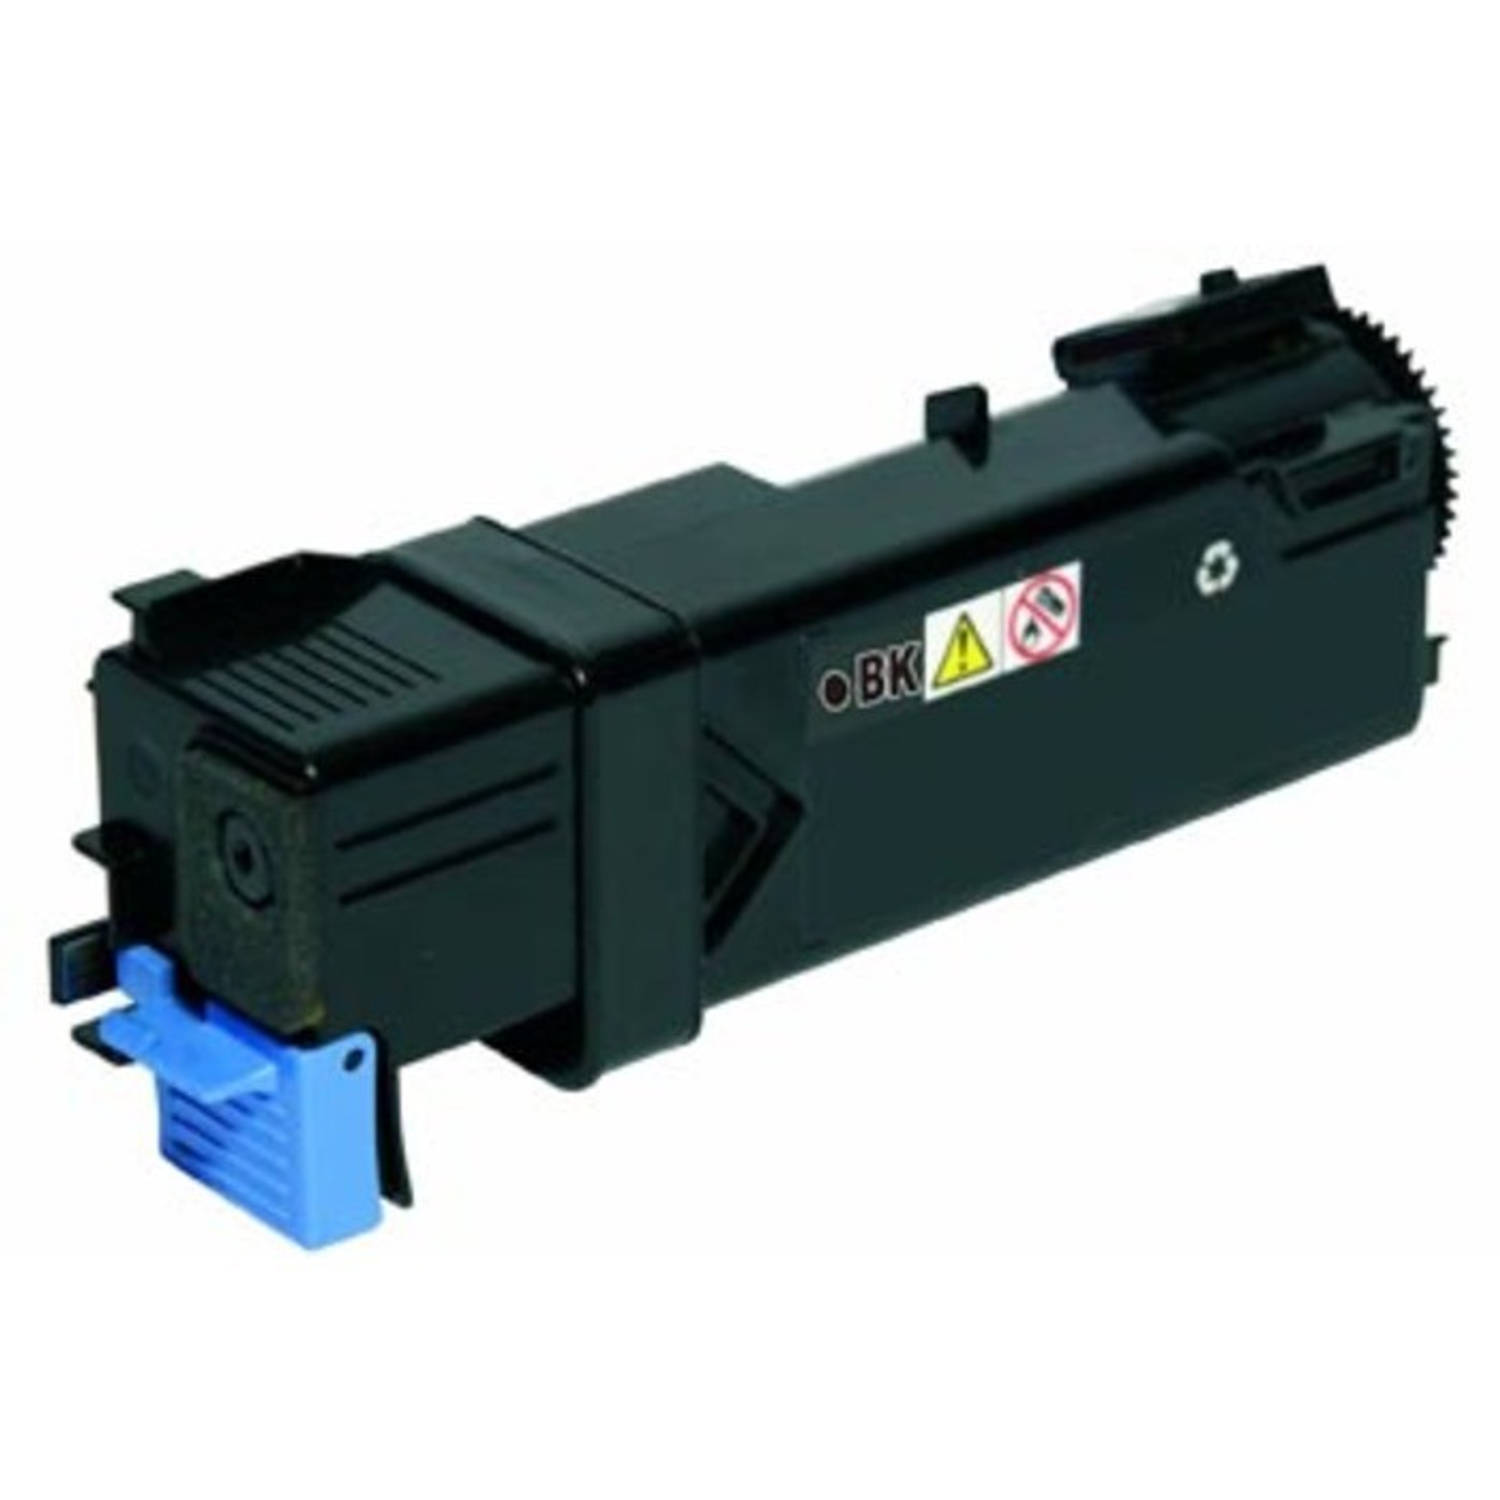 Dell toner high capacity zwart, 3000 pagina's - OEM: 593- 11040 (N51XP)